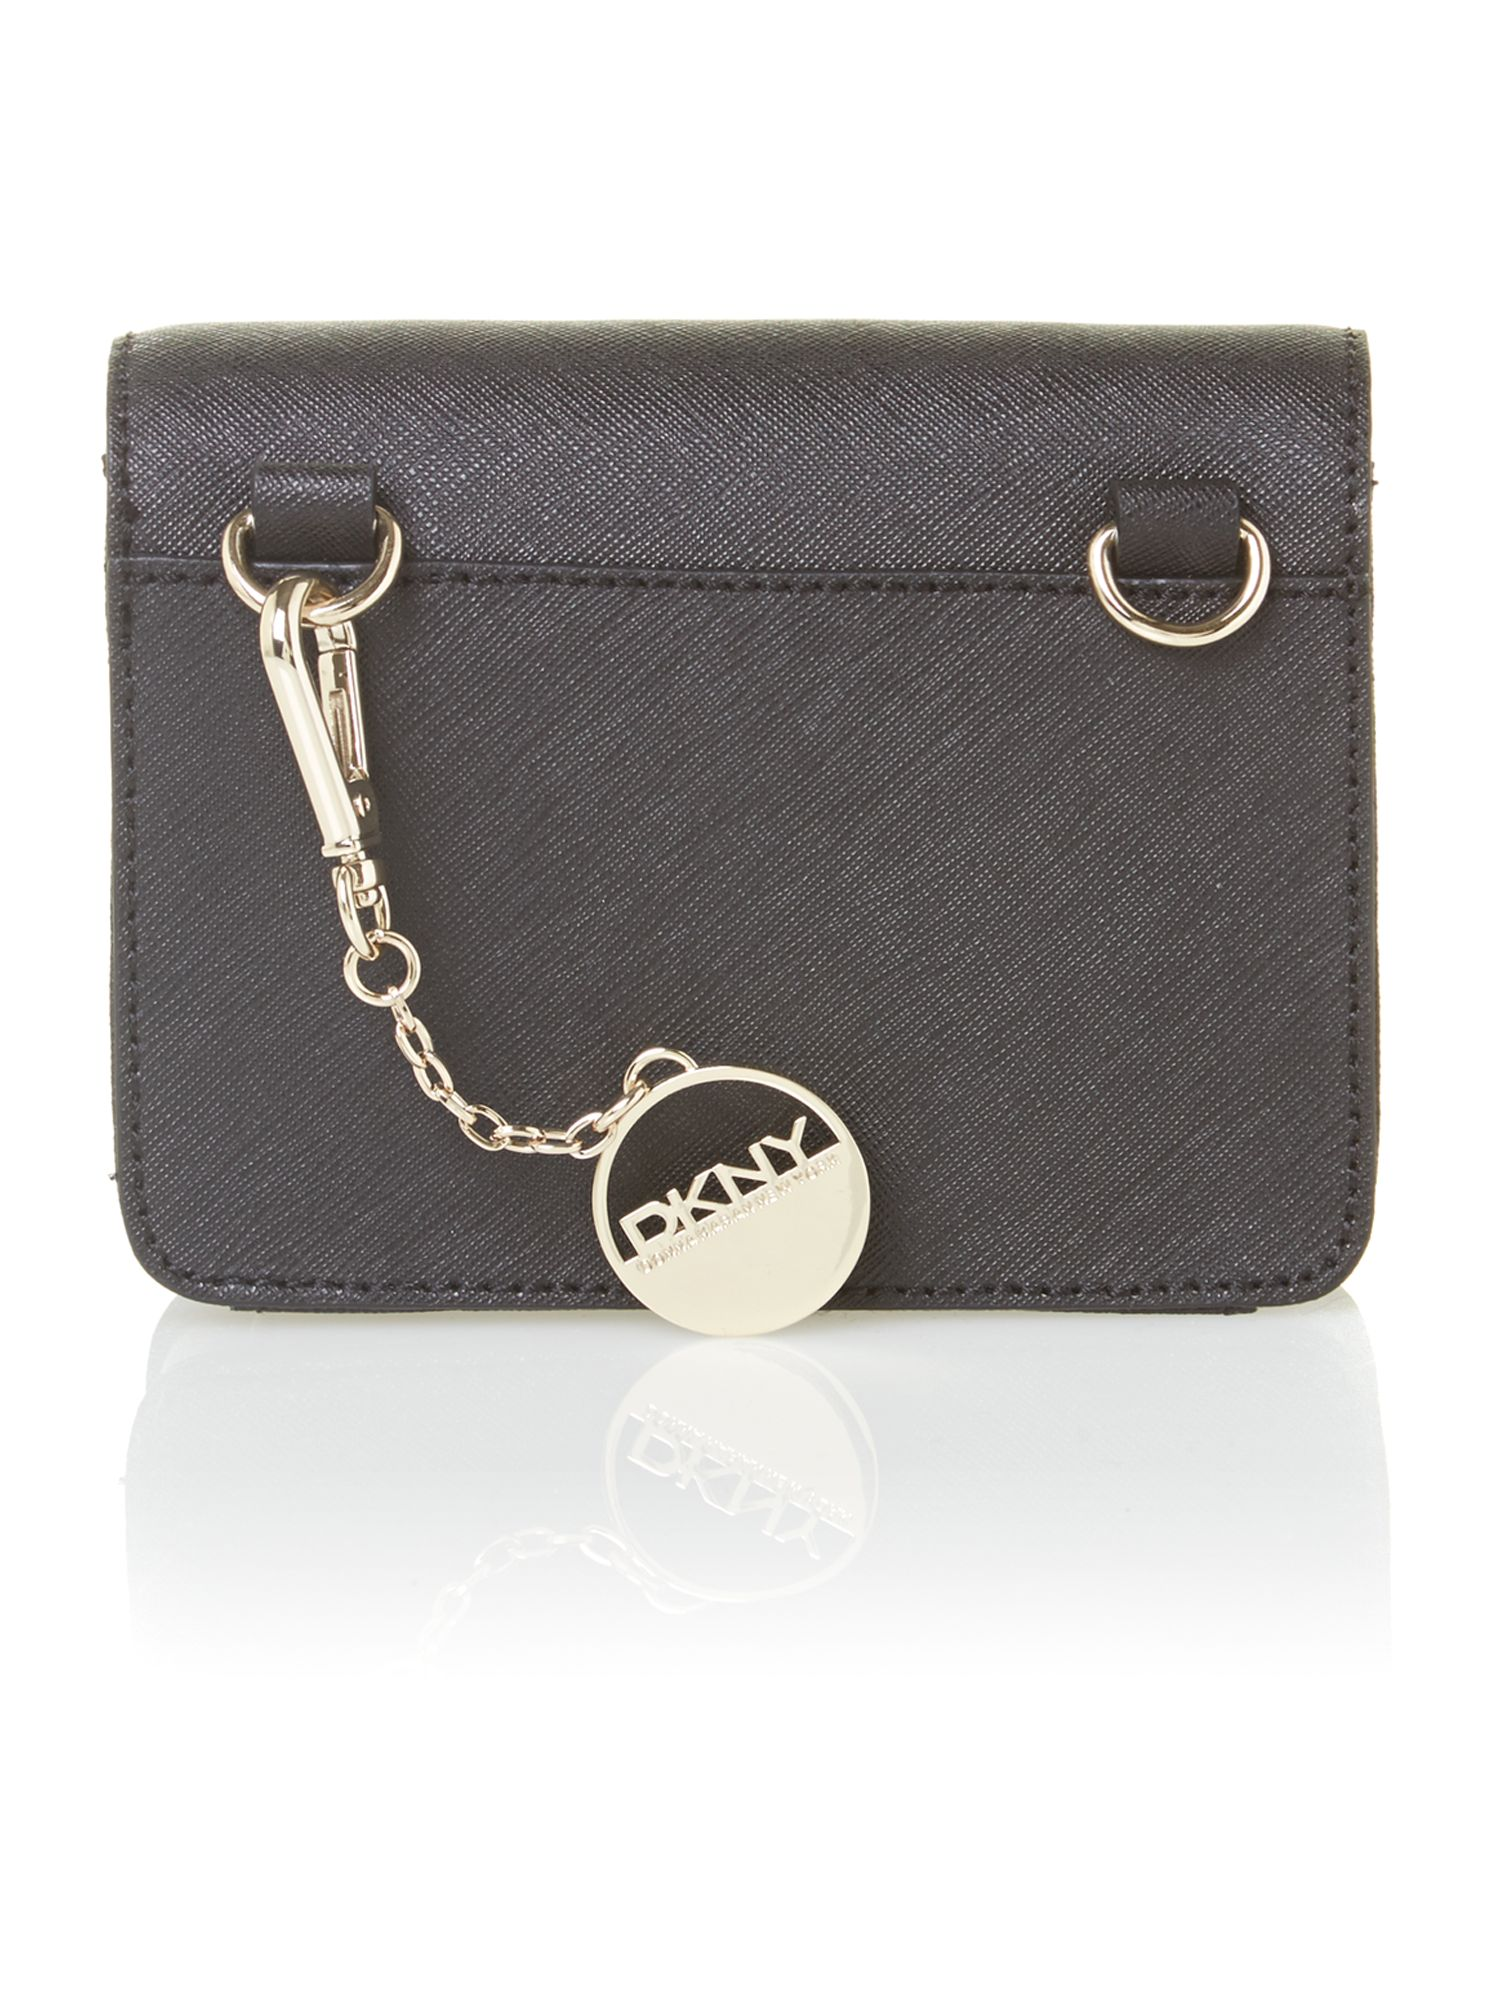 Saffiano items black mini crossbody bag